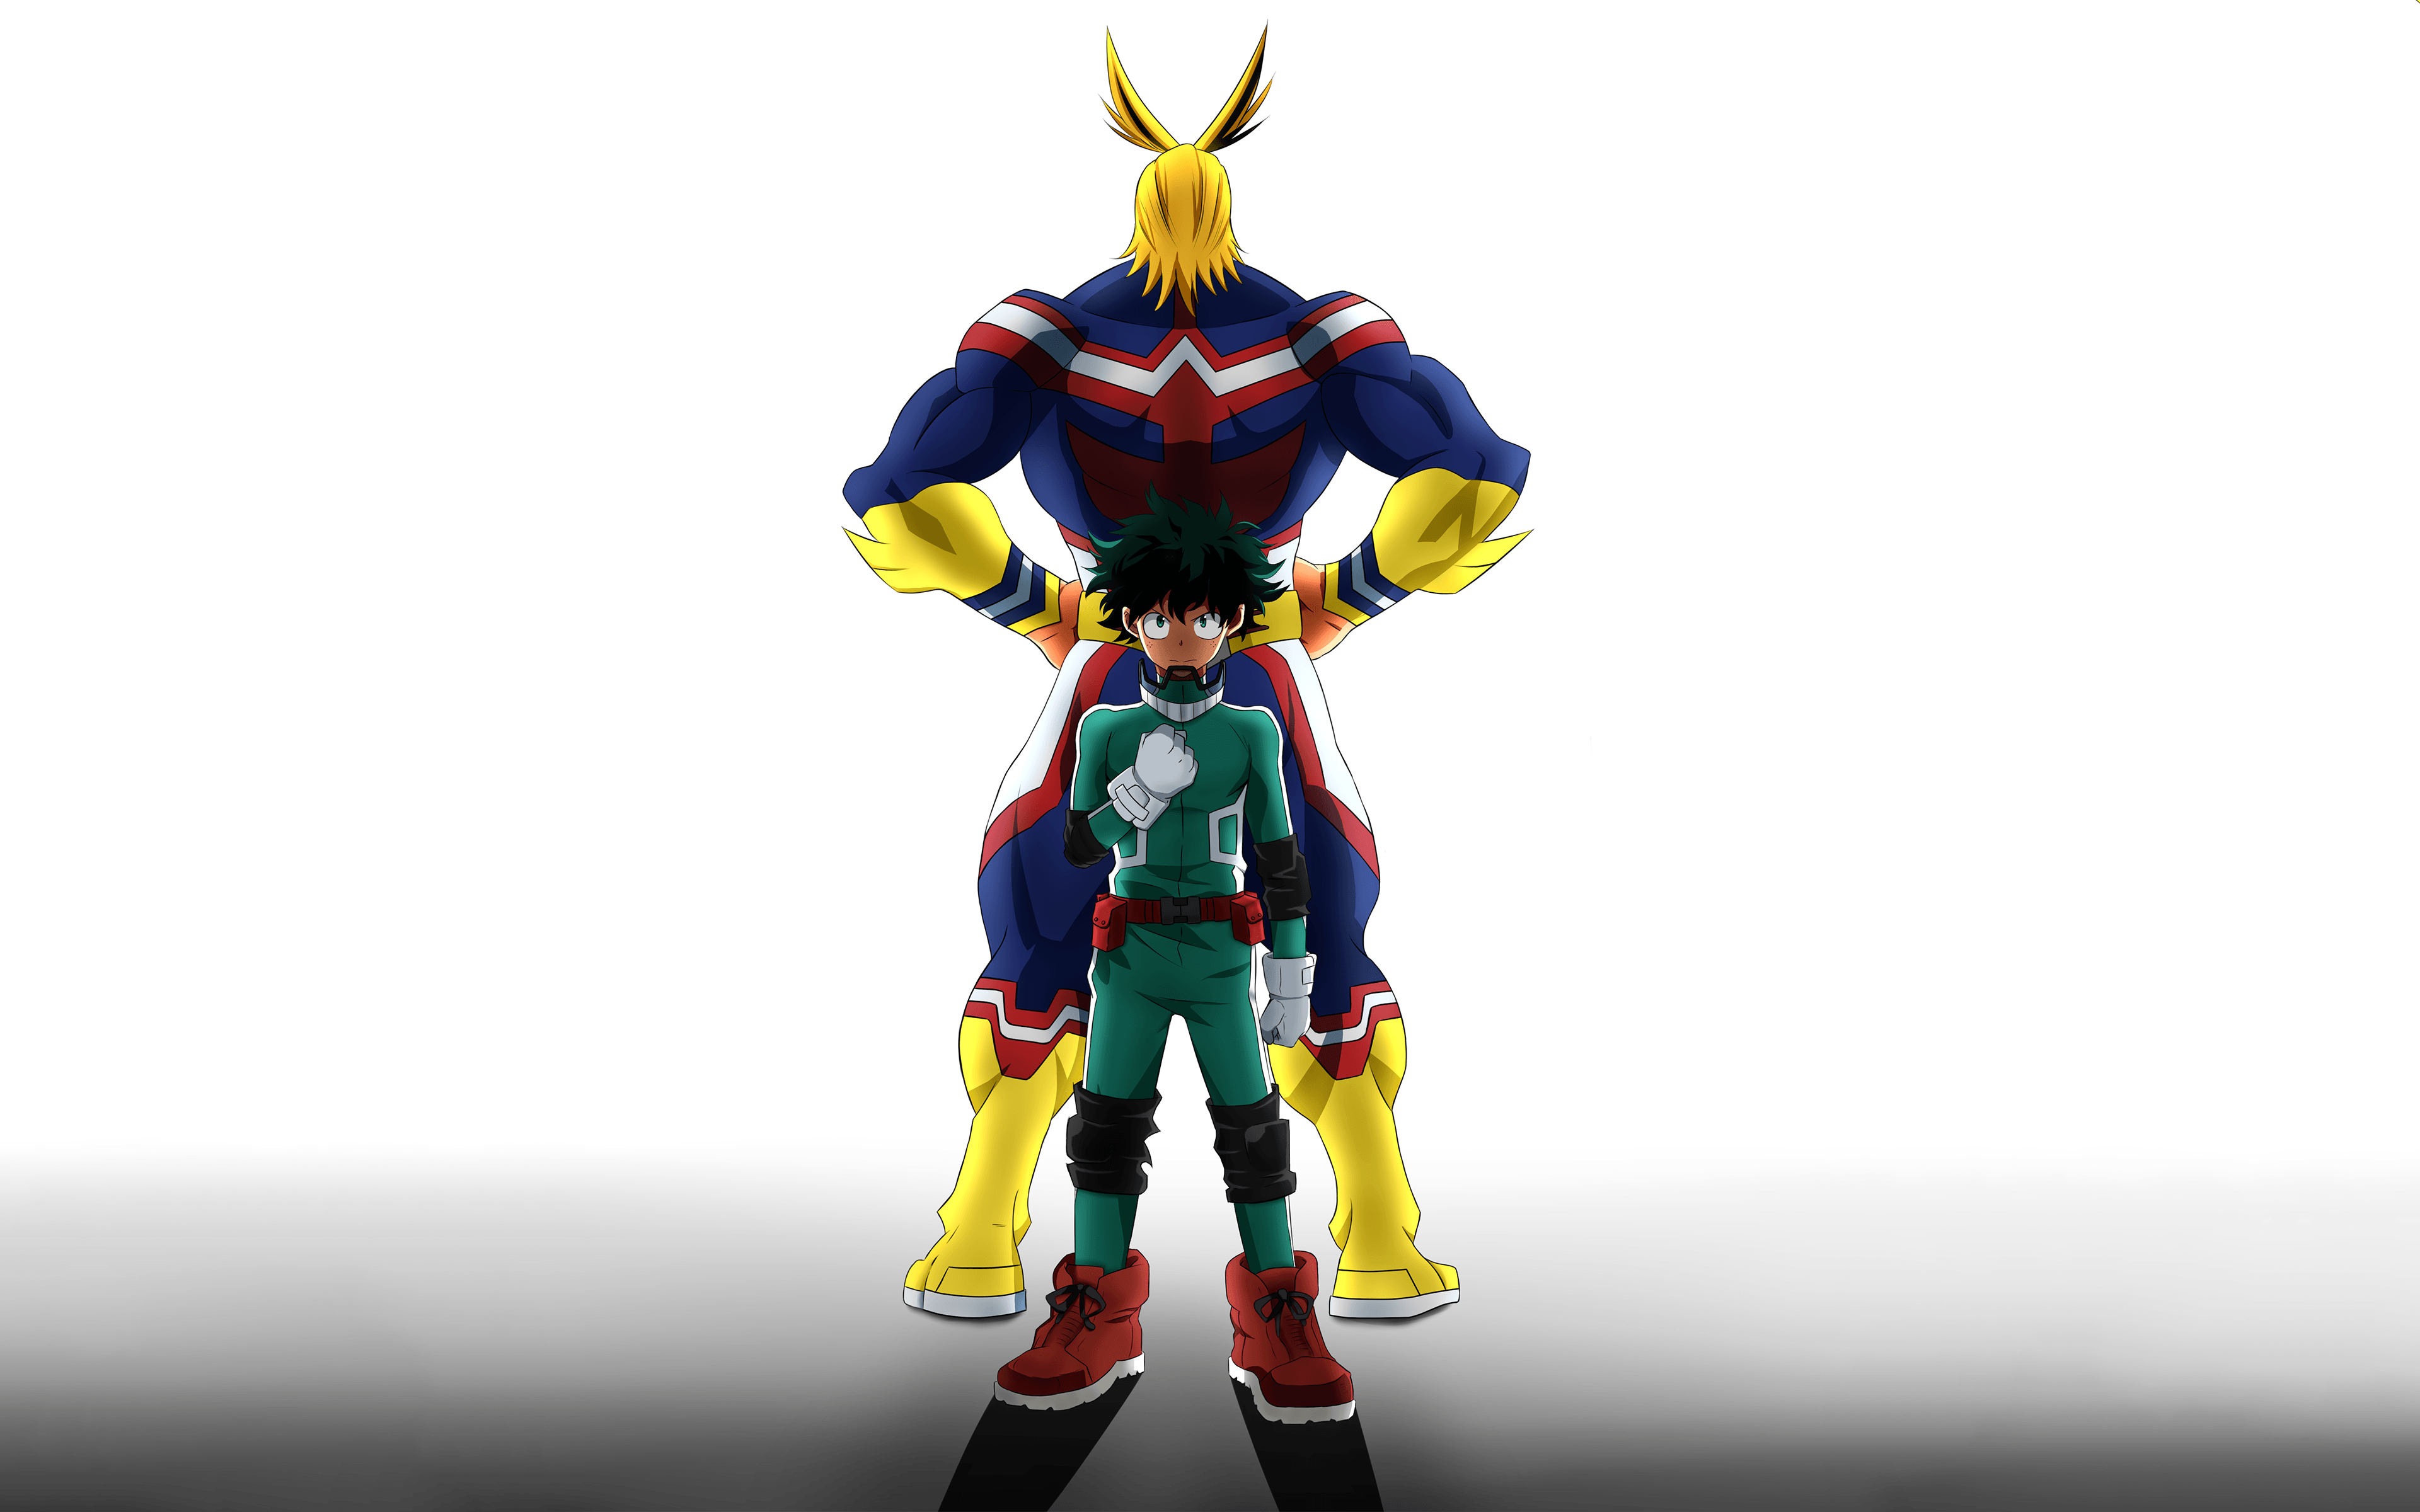 boku no hero academia wallpaper images (2) - HD Wallpapers Buzz